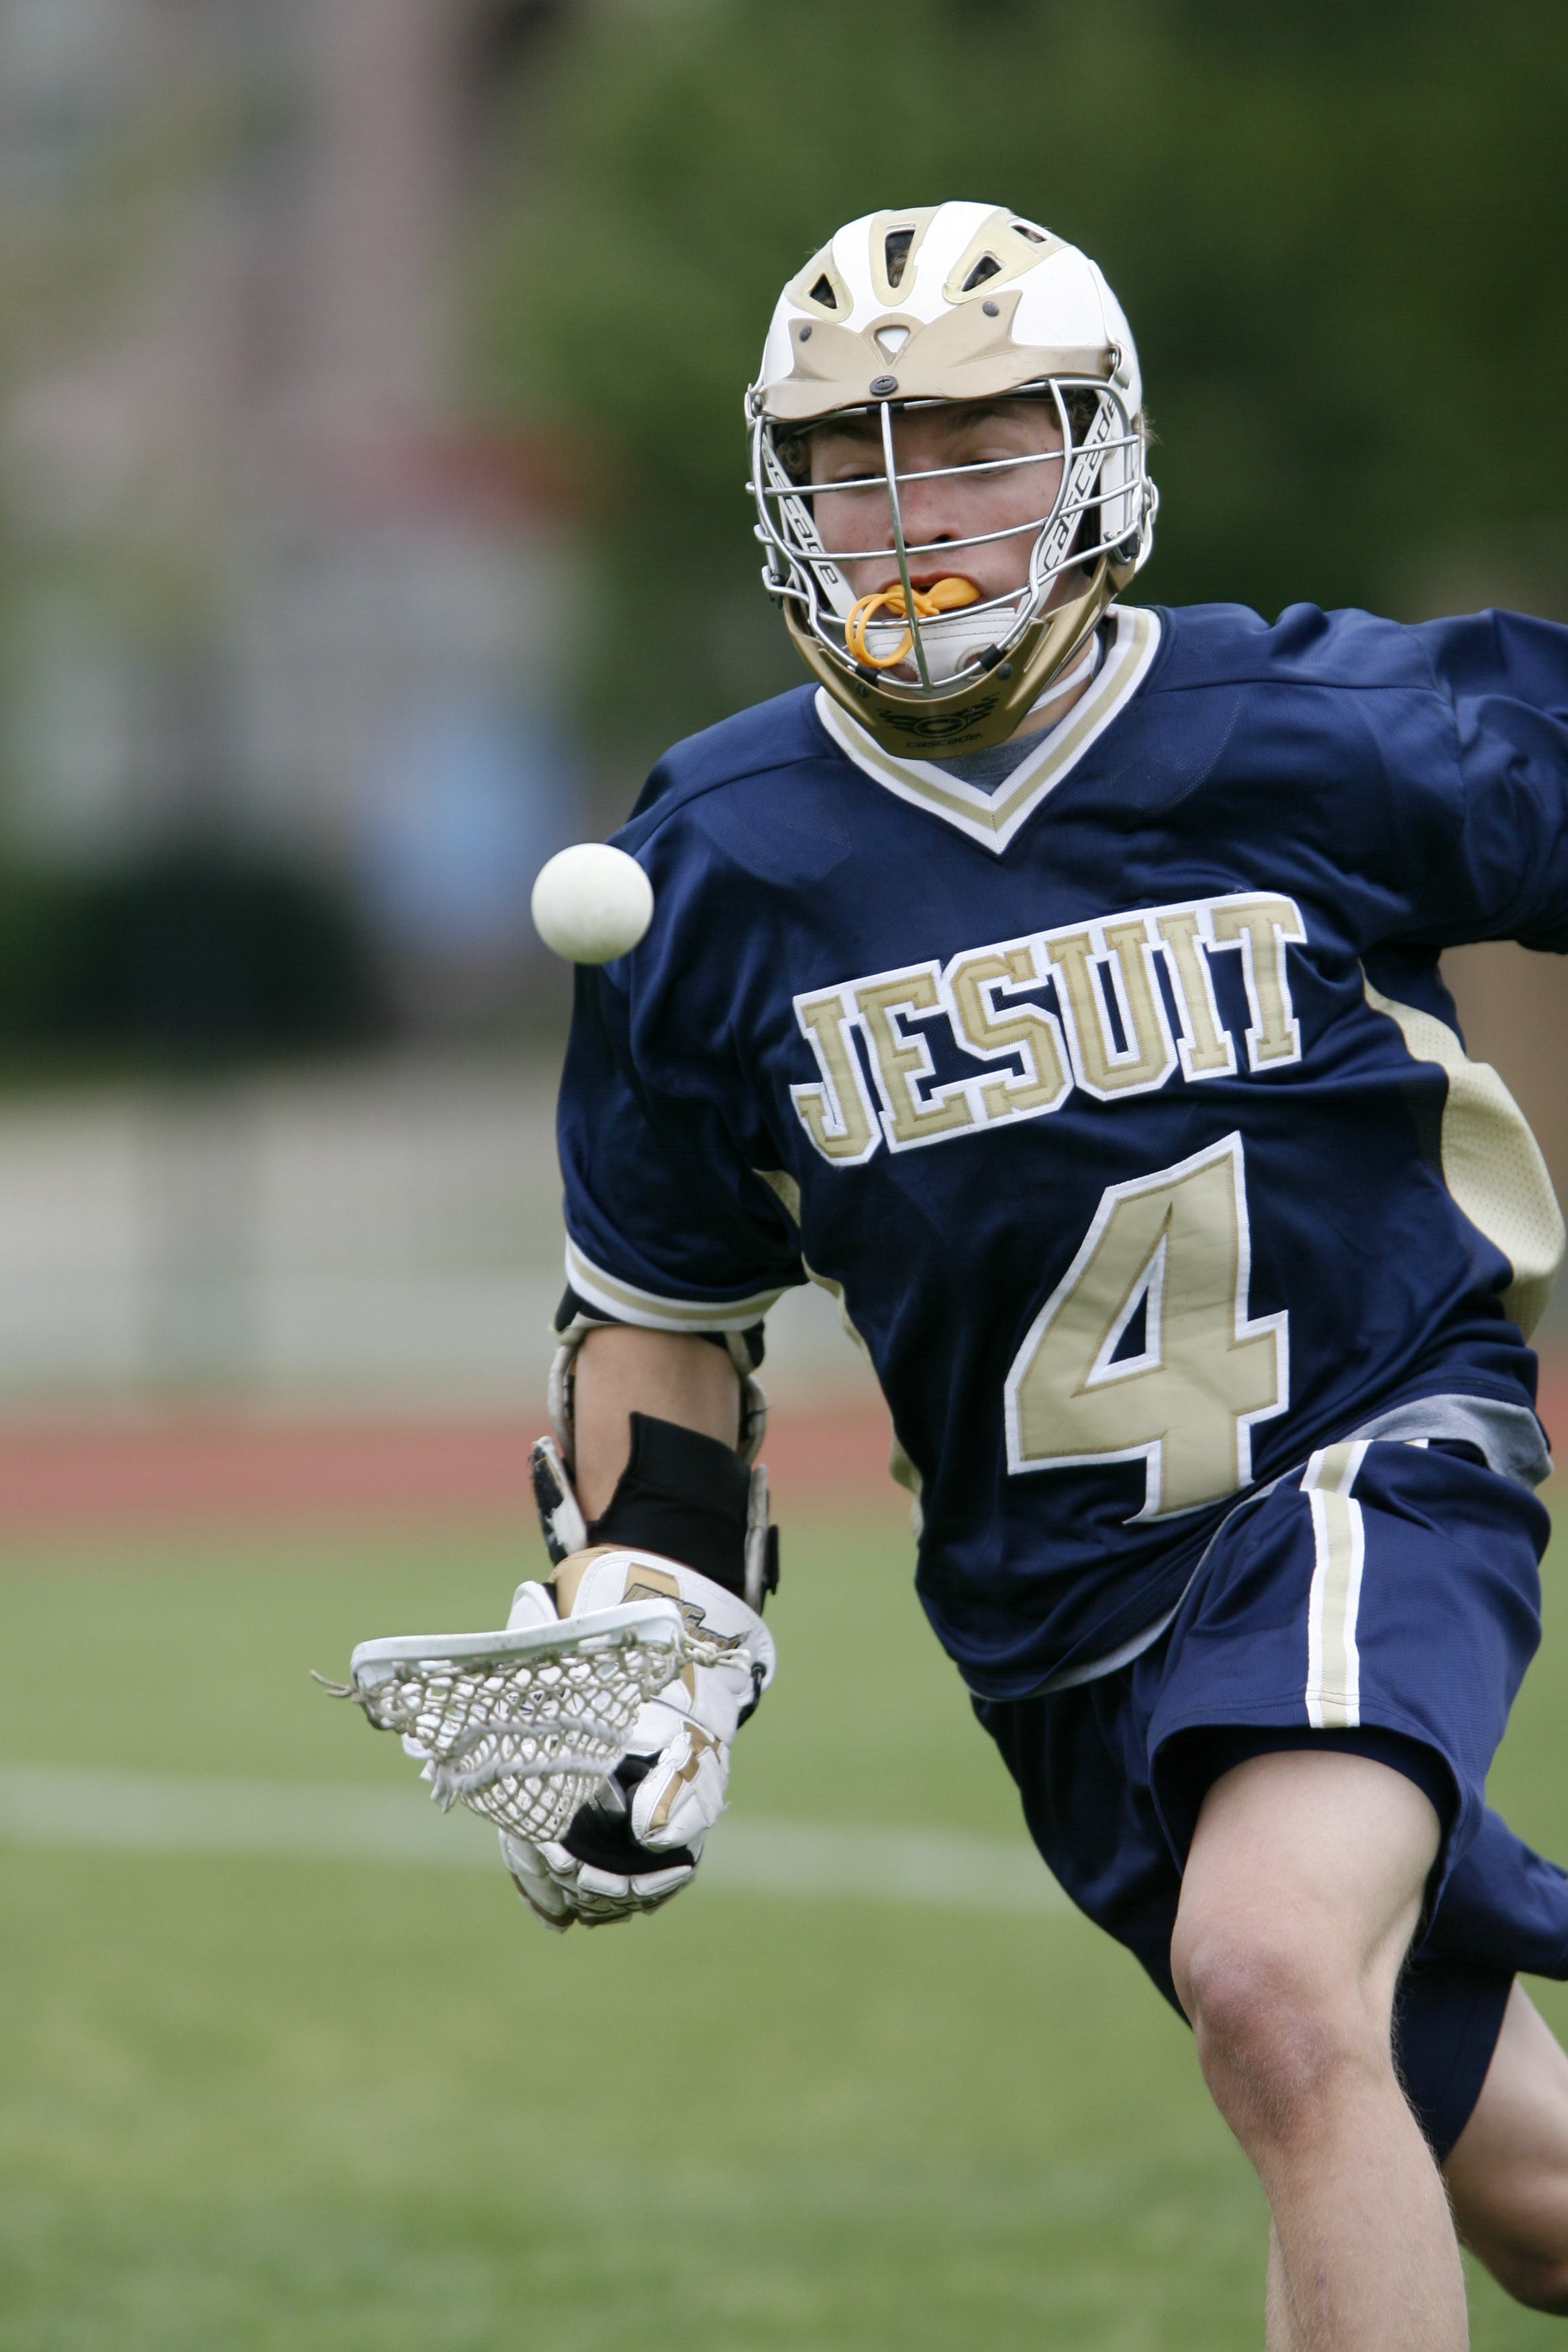 Man Holding Lacrosse Stick Running on Field during Daytime